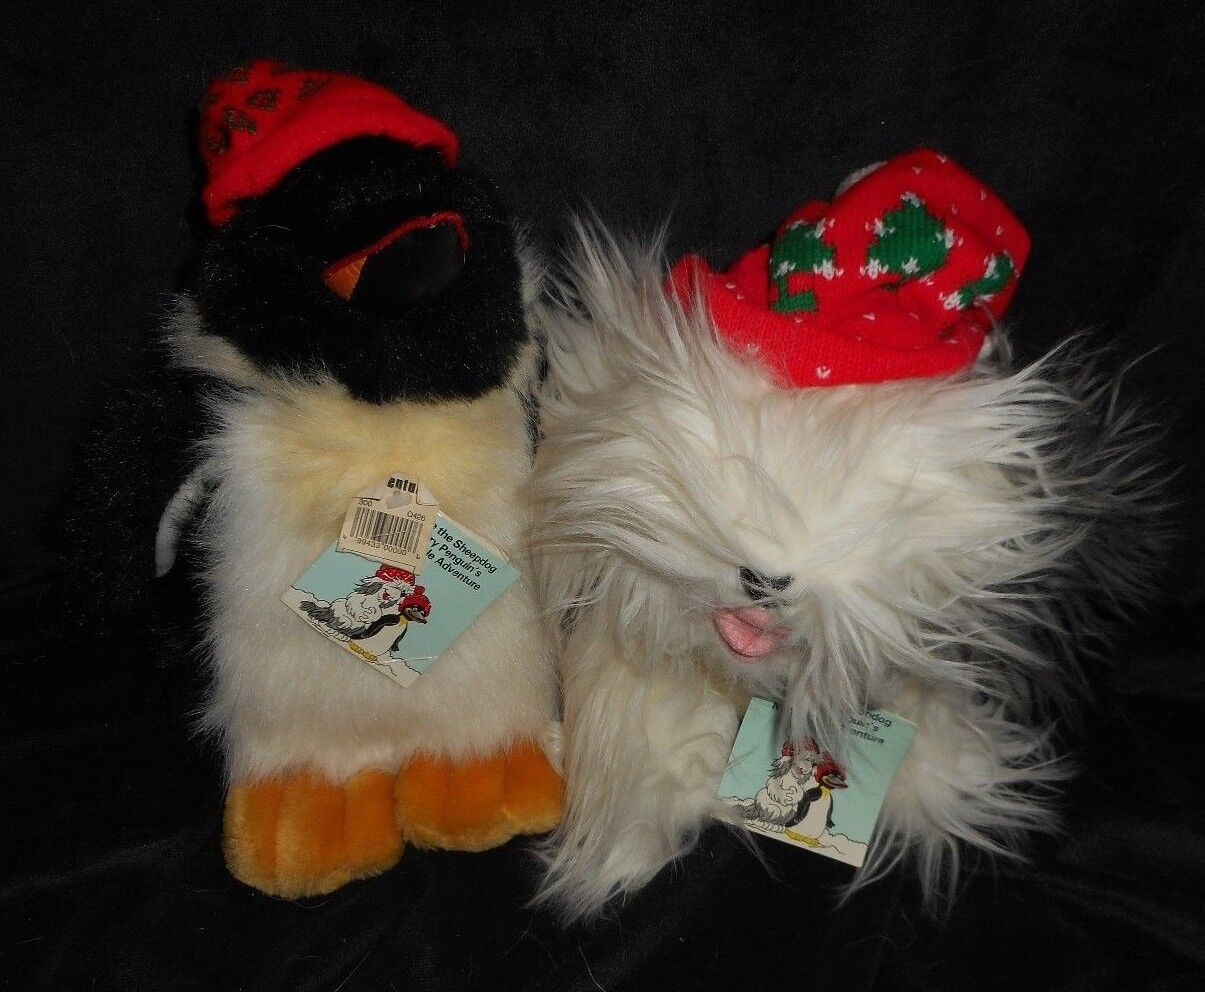 VINTAGE CHRISTMAS COMMONWEALTH PERRY PENGUIN & SHEEPDOG STUFFED ANIMAL PLUSH TOY